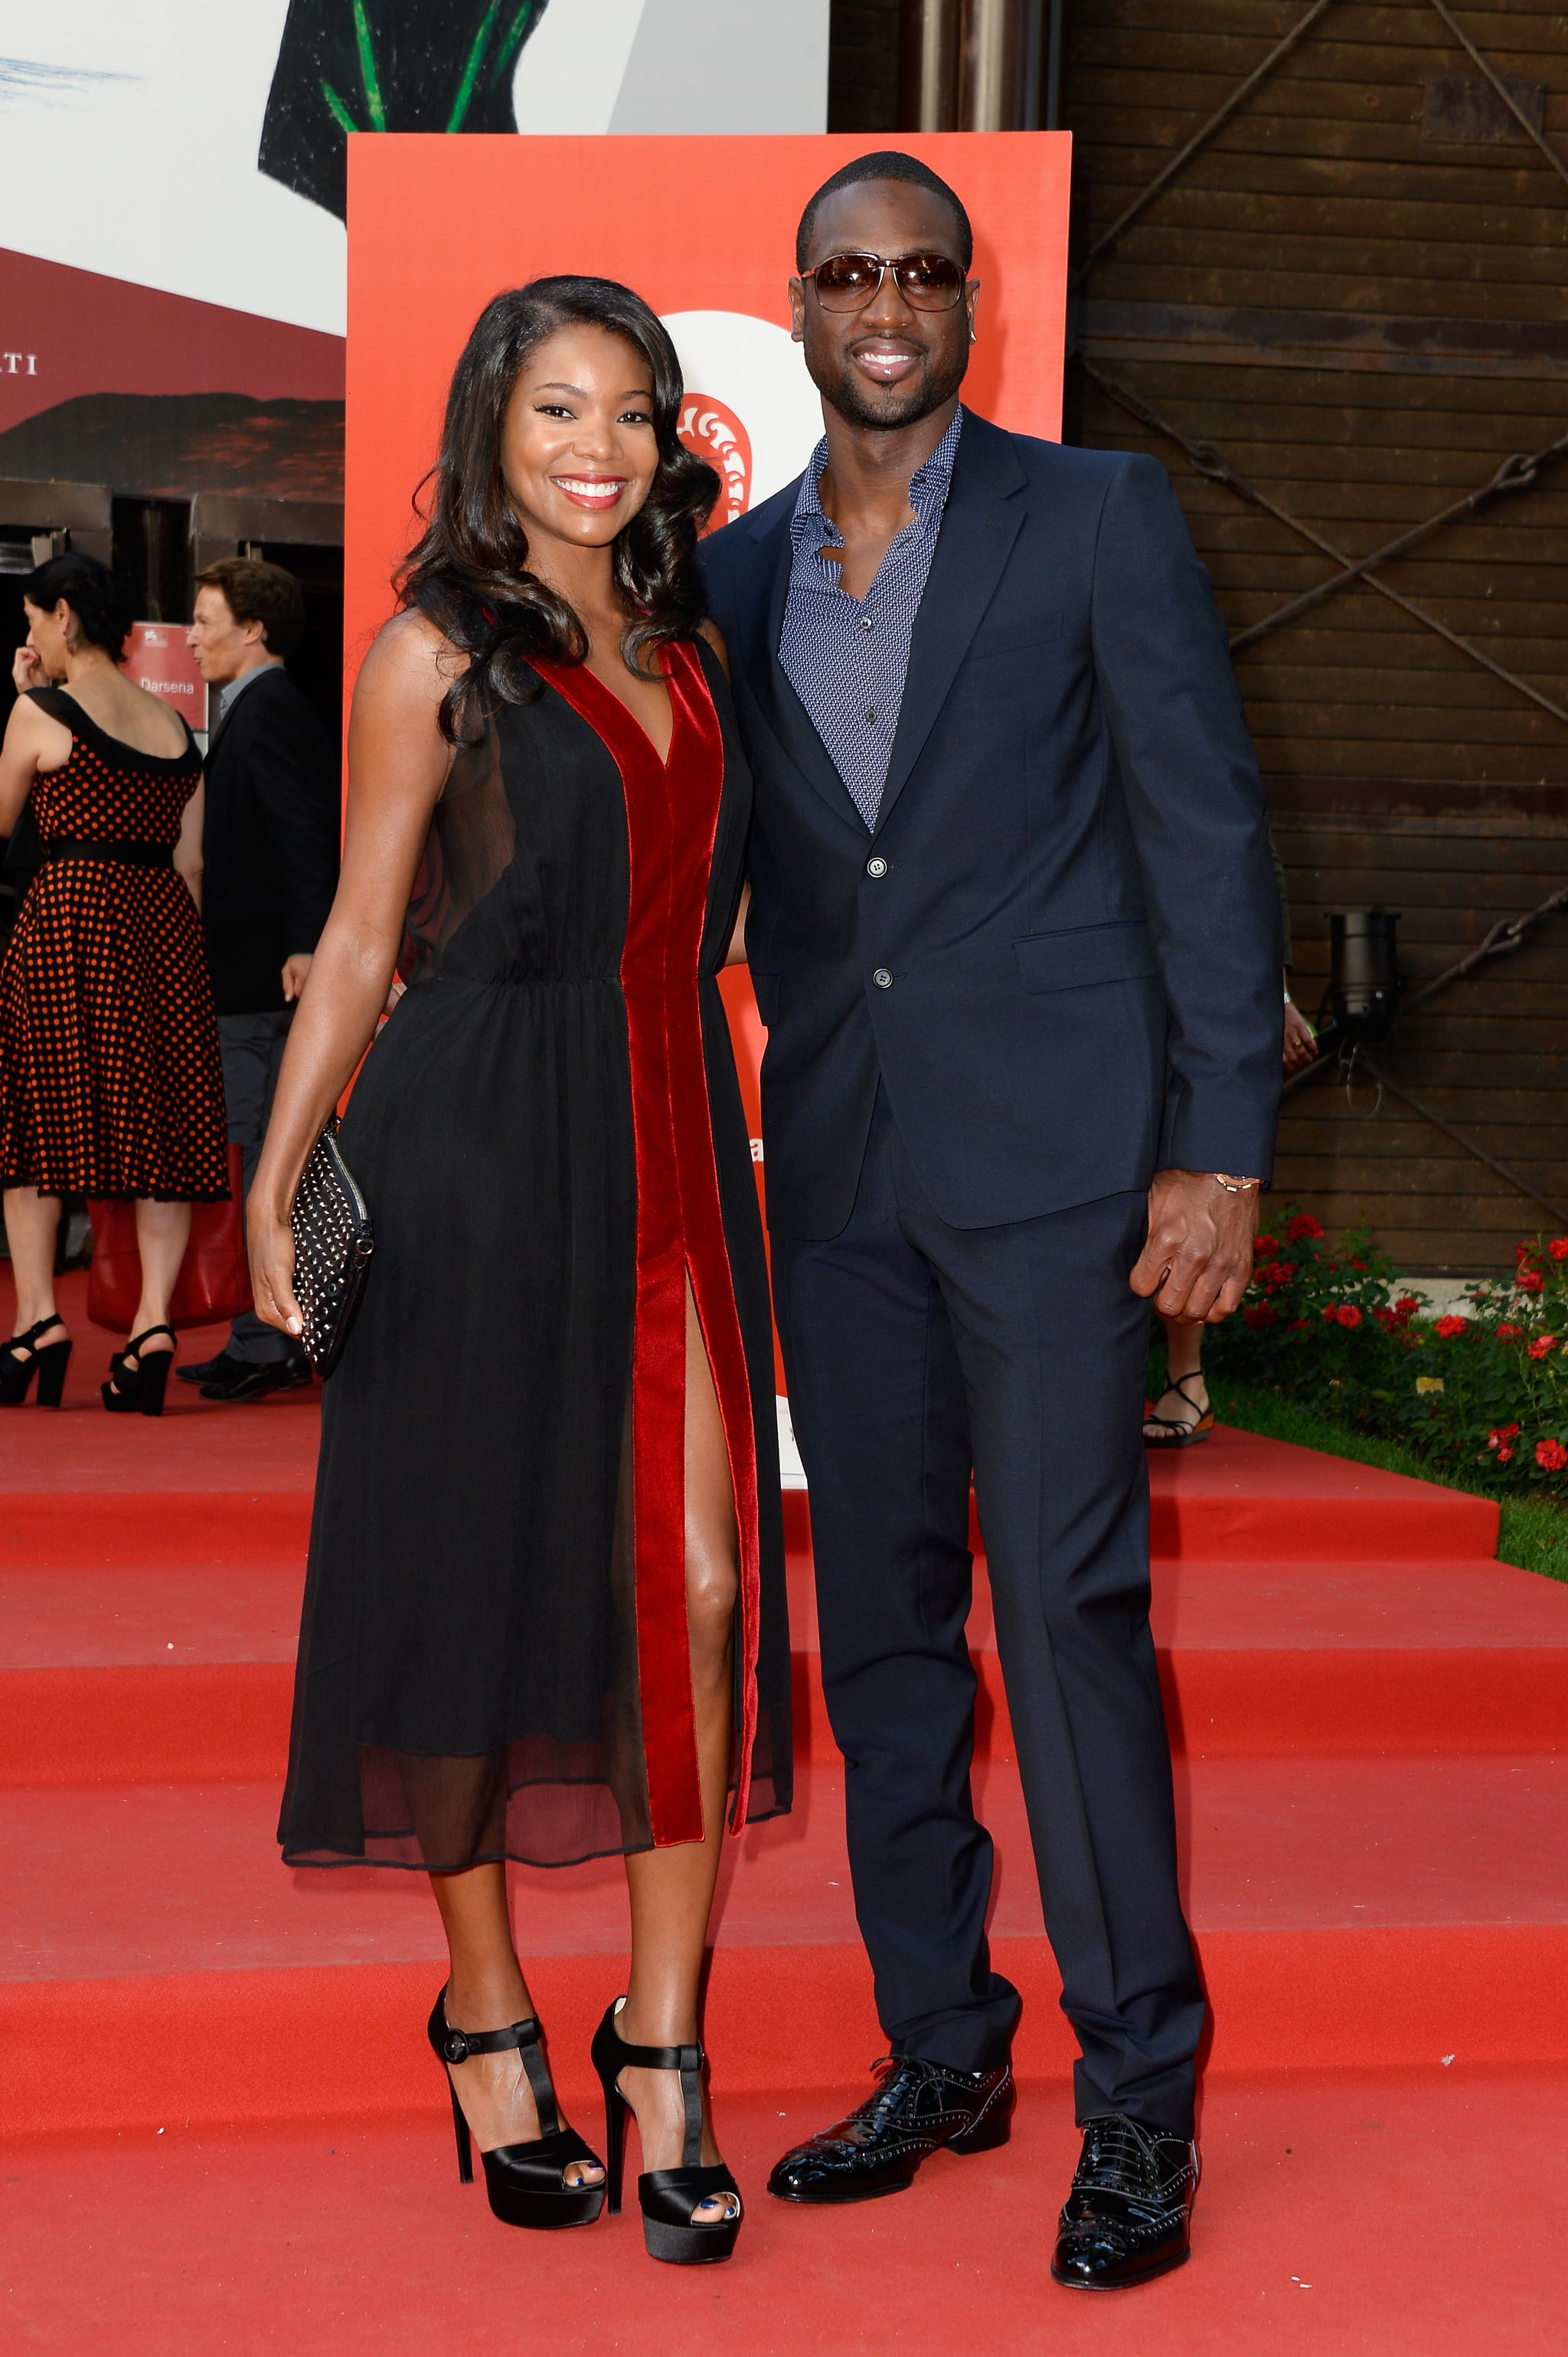 Dwyane Wade and Gabrielle Union arrived for the Miu Miu Women's Tales event.